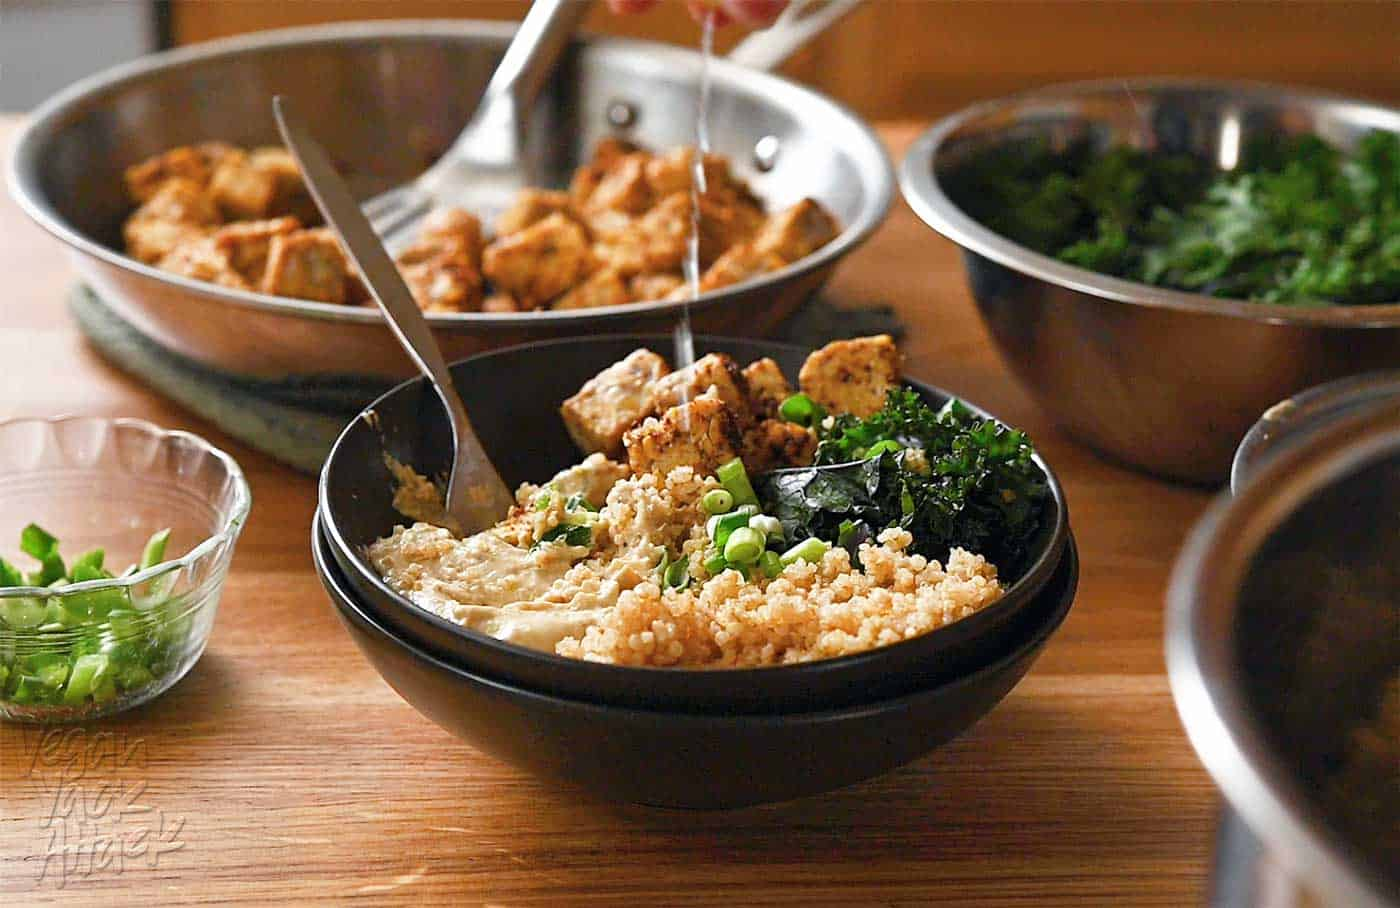 Lemon wedge being squeezed over a bowl with quinoa, kale, tempeh, and spread